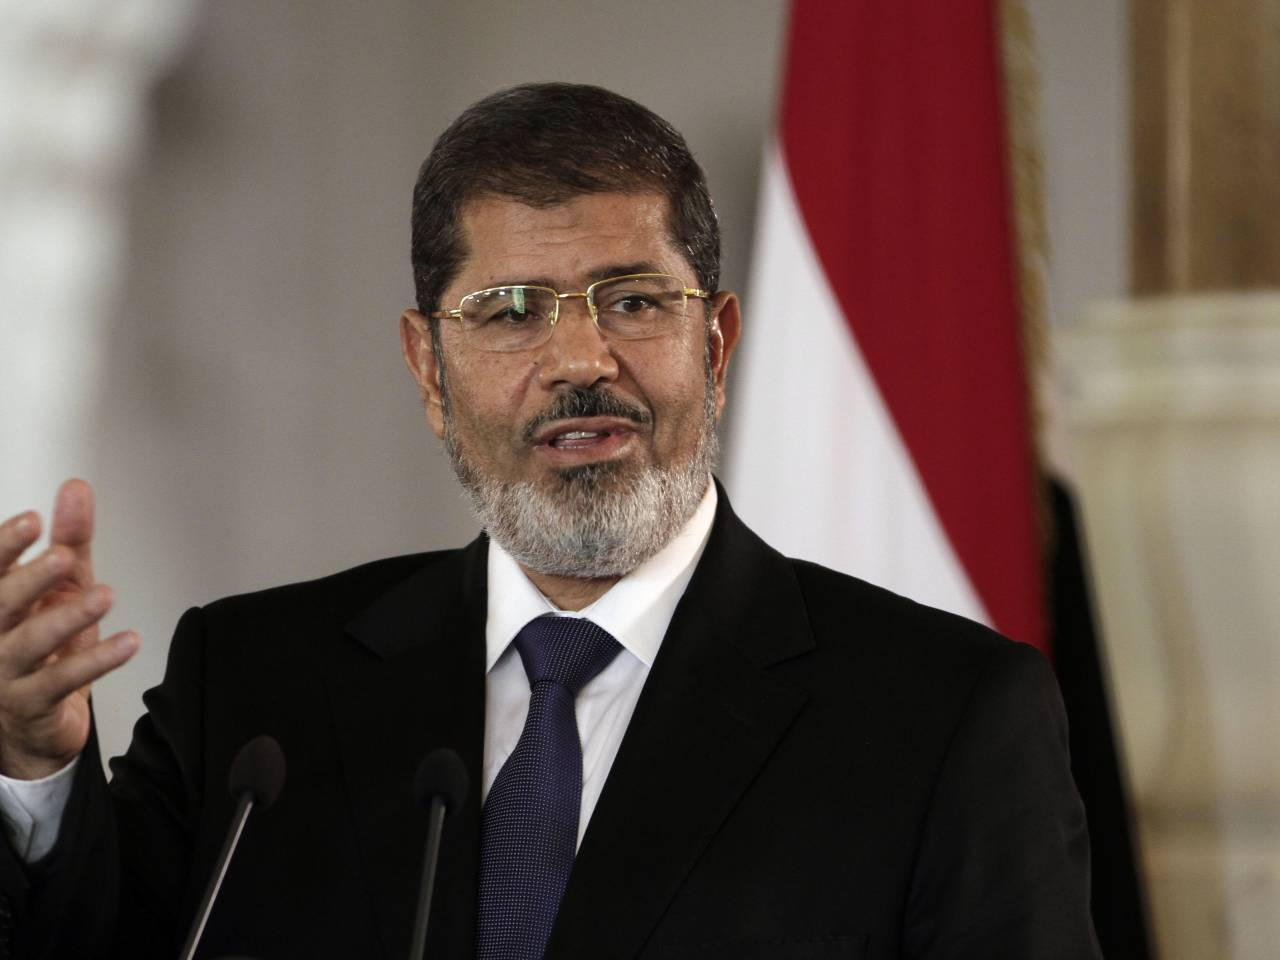 Morsi has been buried; how poor jail condition led to his death at 67